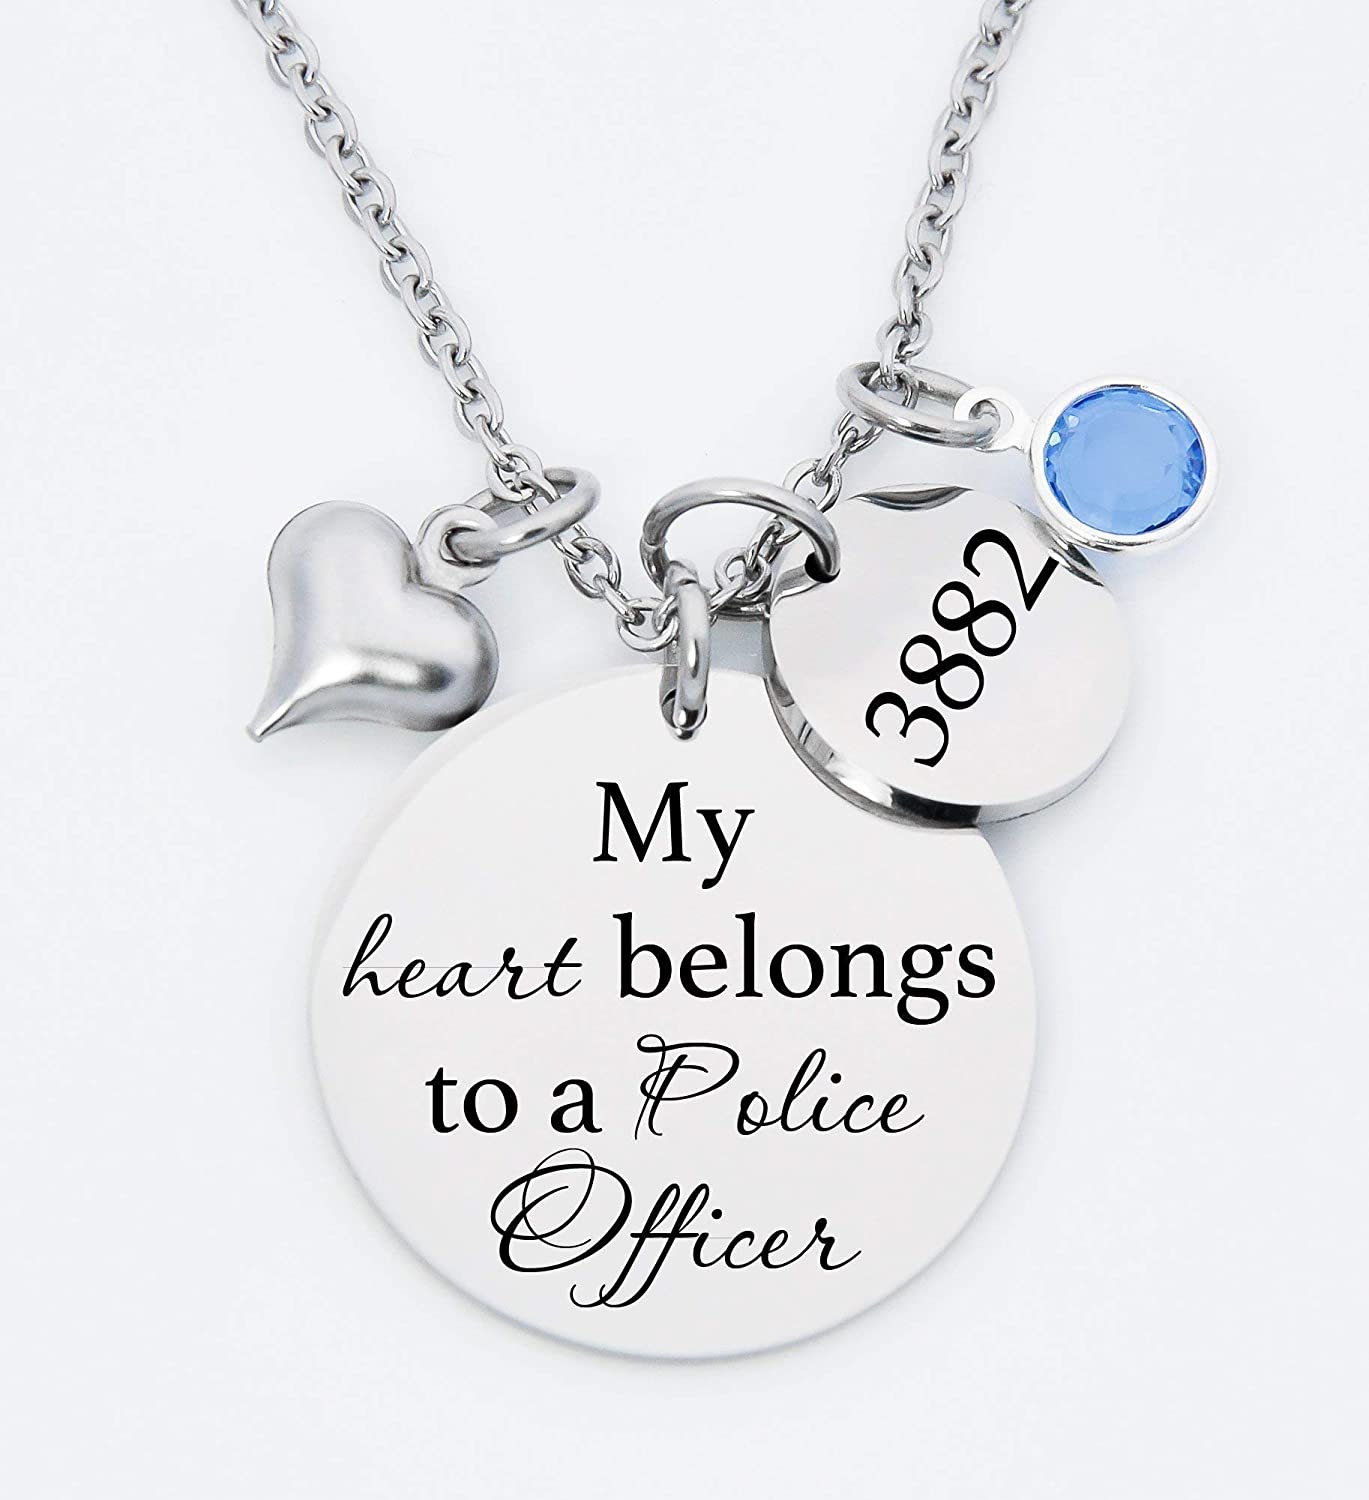 Gold-Silver-Rose Gold Charm Proud Wife Of A Police Officer Jewelry Supplies Personalized Charms Laser Engraved Charms